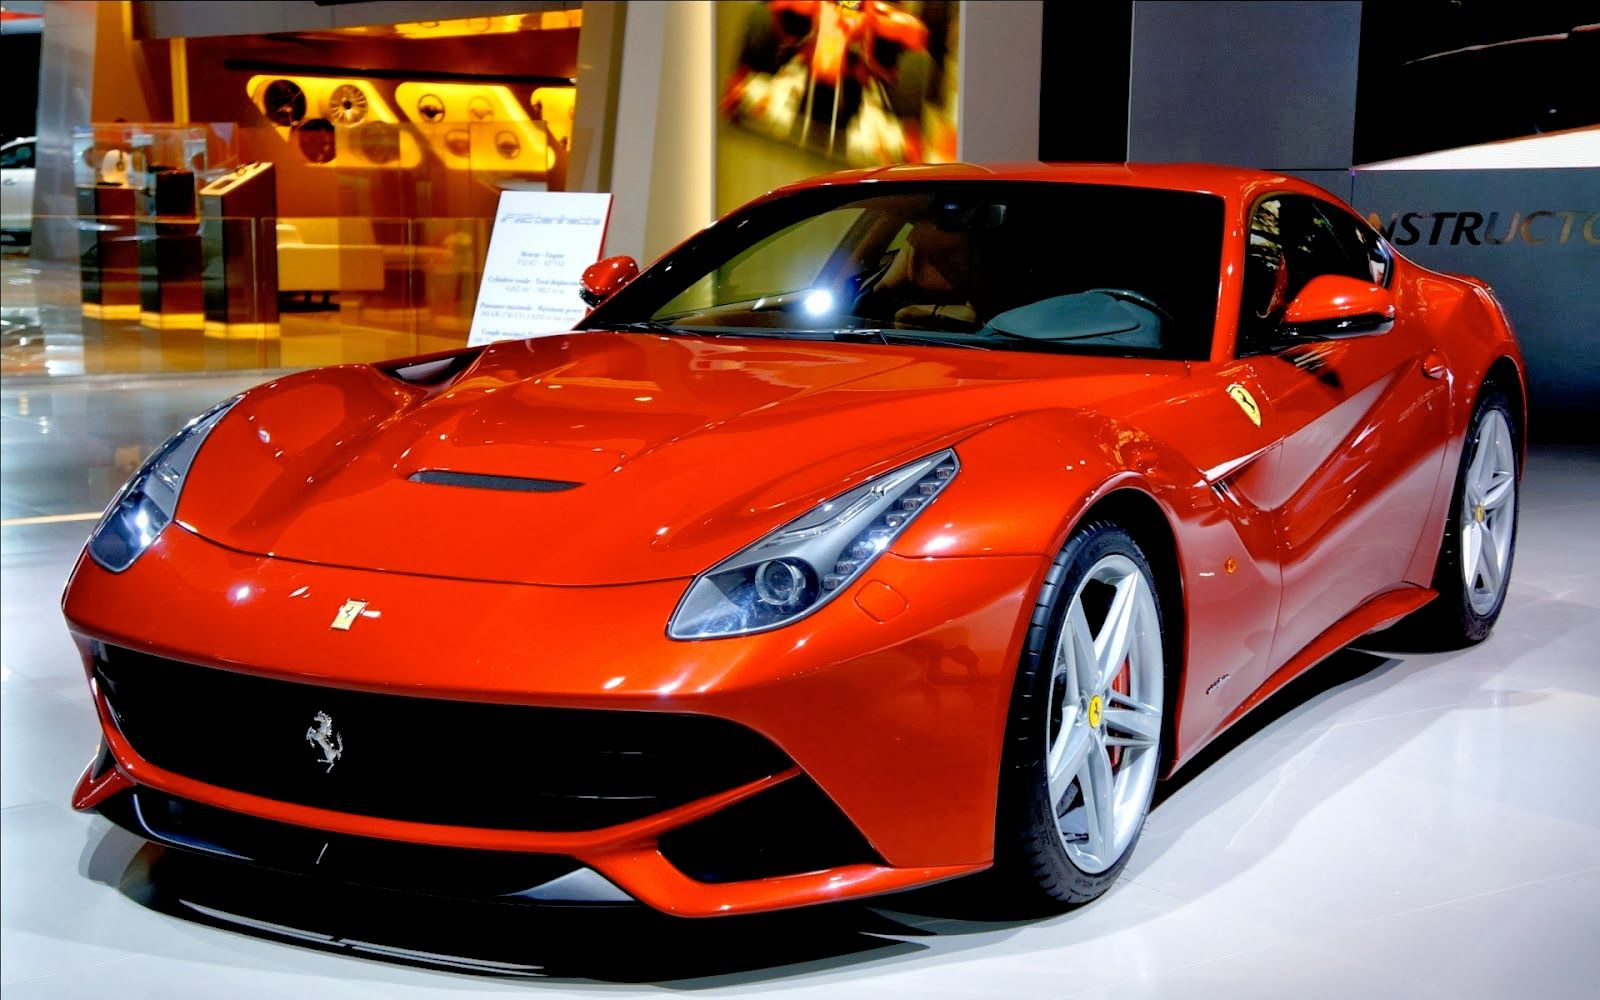 Elegant Ferrari Cars Hd Wallpapers 1080p To Pictures S1o With